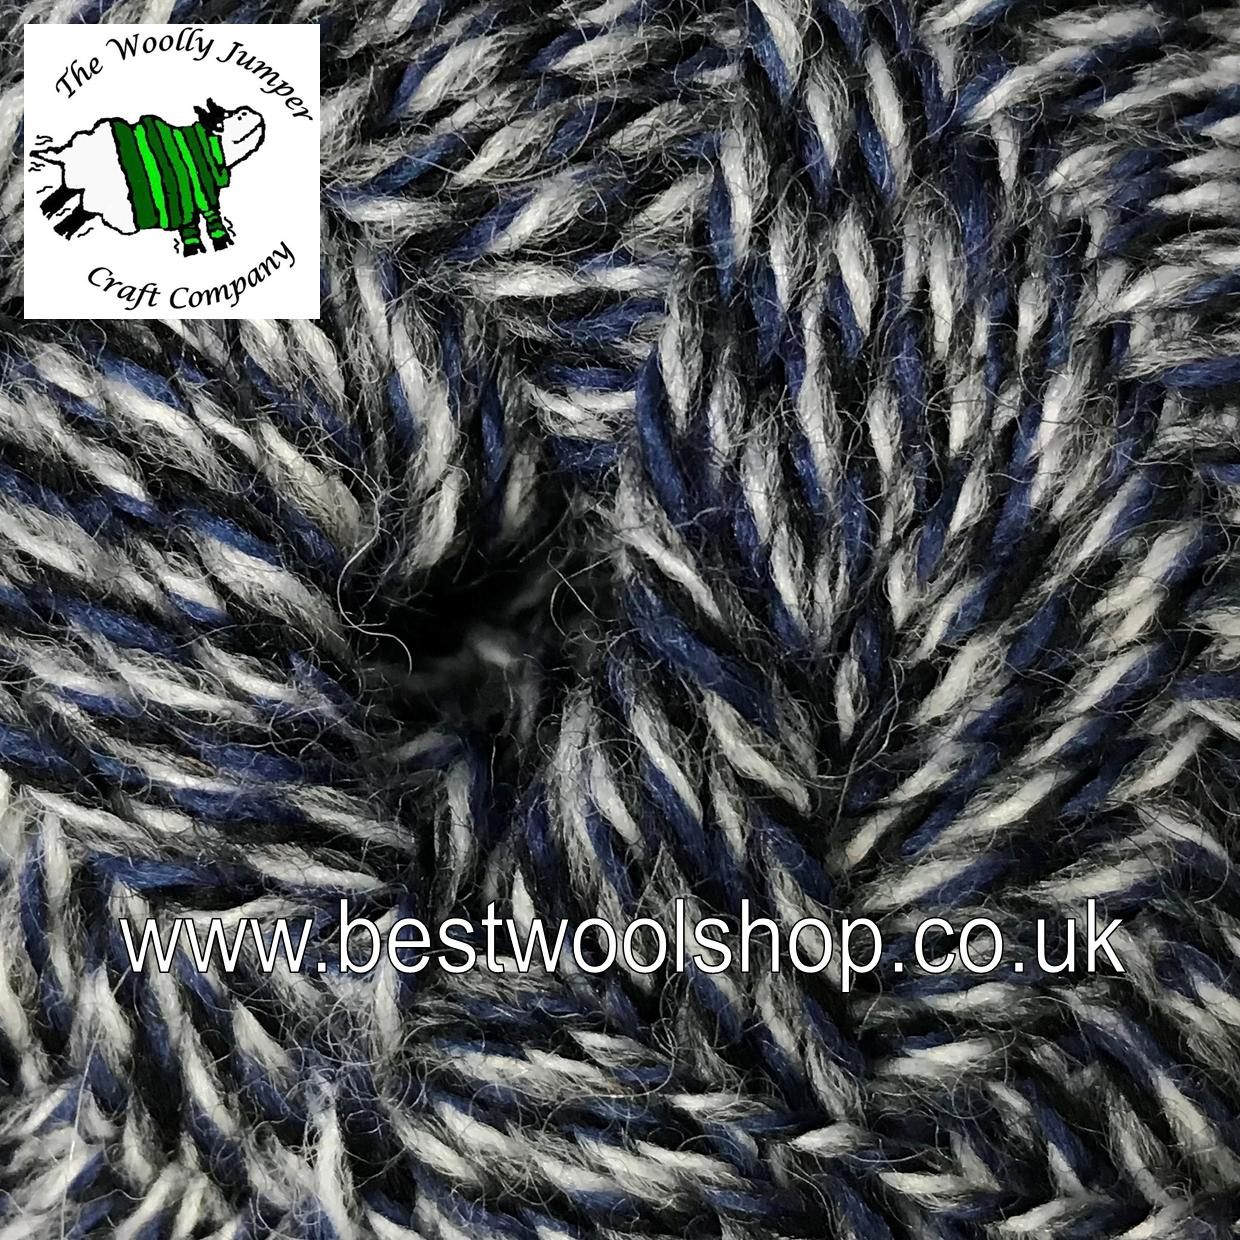 027 - NAVY GREY WHITE - GRUNDL HOT SOCKS UNI 50 4 PLY - KNITTING ...